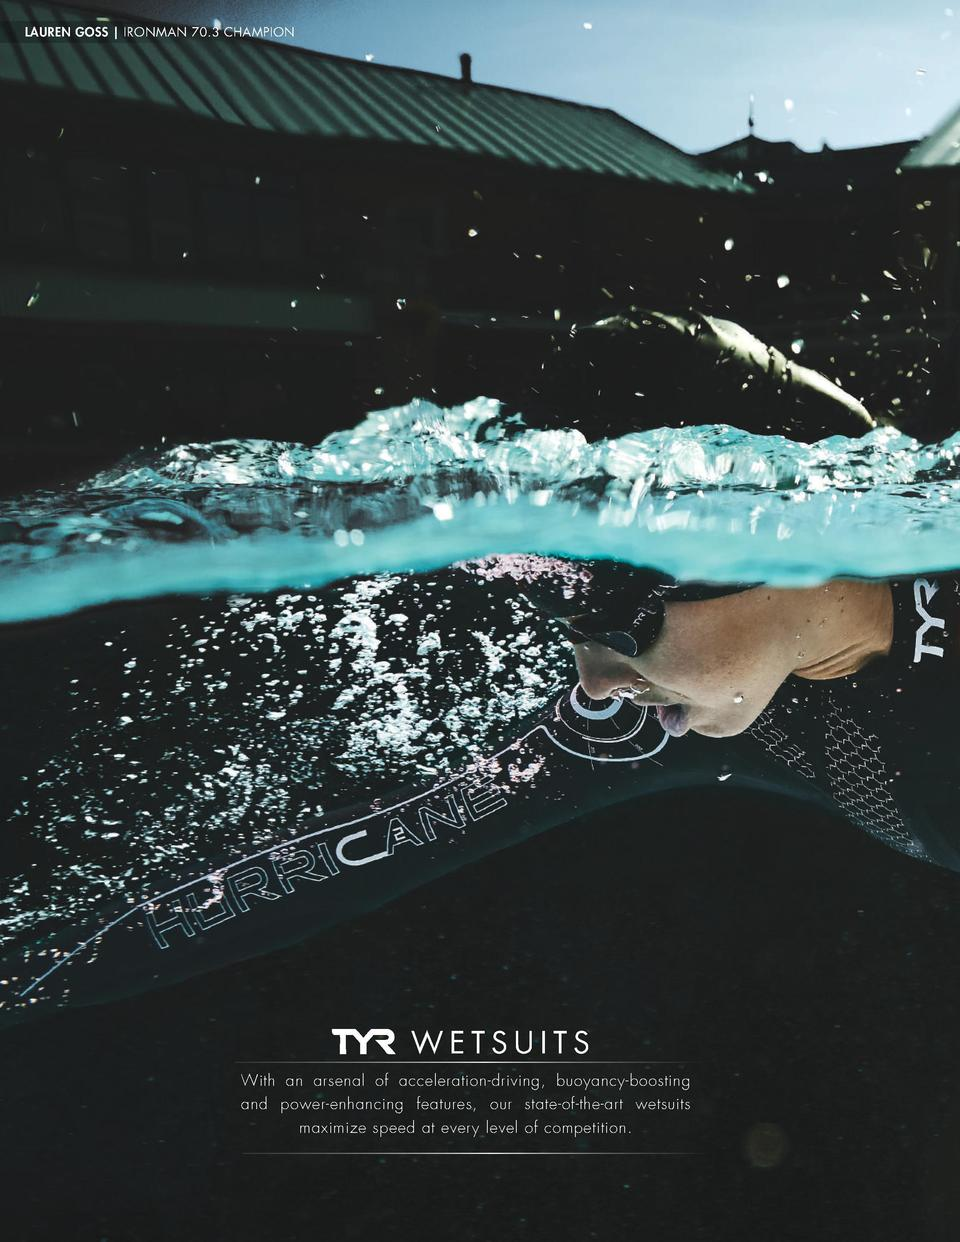 TECHNICAL SWIM LAUREN GOSS   IRONMAN 70.3 CHAMPION  WETSUITS With an arsenal of acceleration-driving, buoyancy-boosting an...